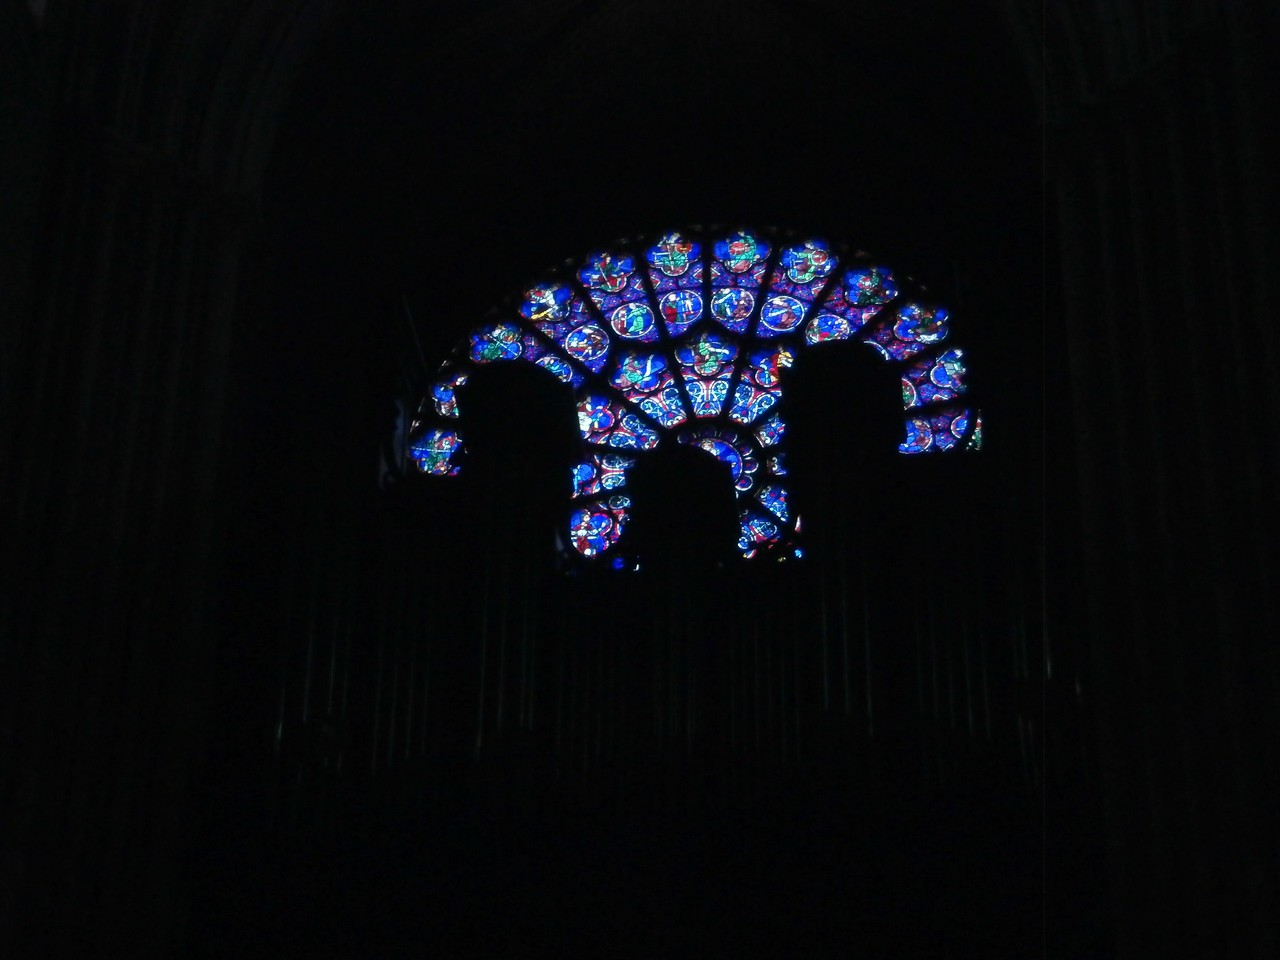 Rose window and organ in Notre Dame